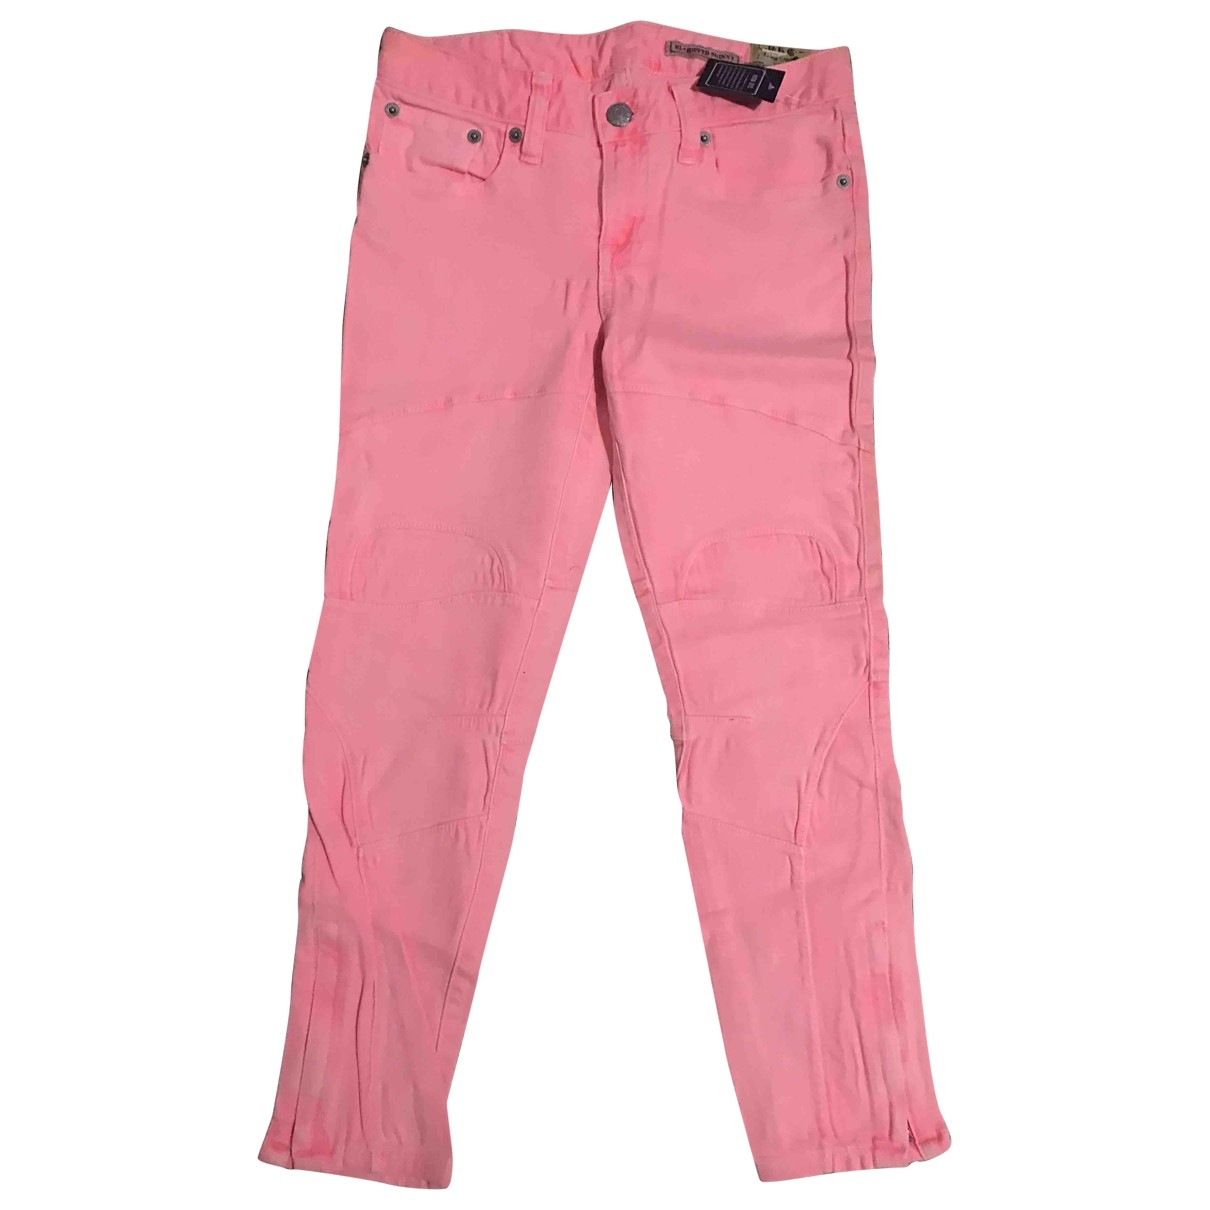 Ralph Lauren \N Pink Denim - Jeans Trousers for Kids 10 years - until 56 inches UK